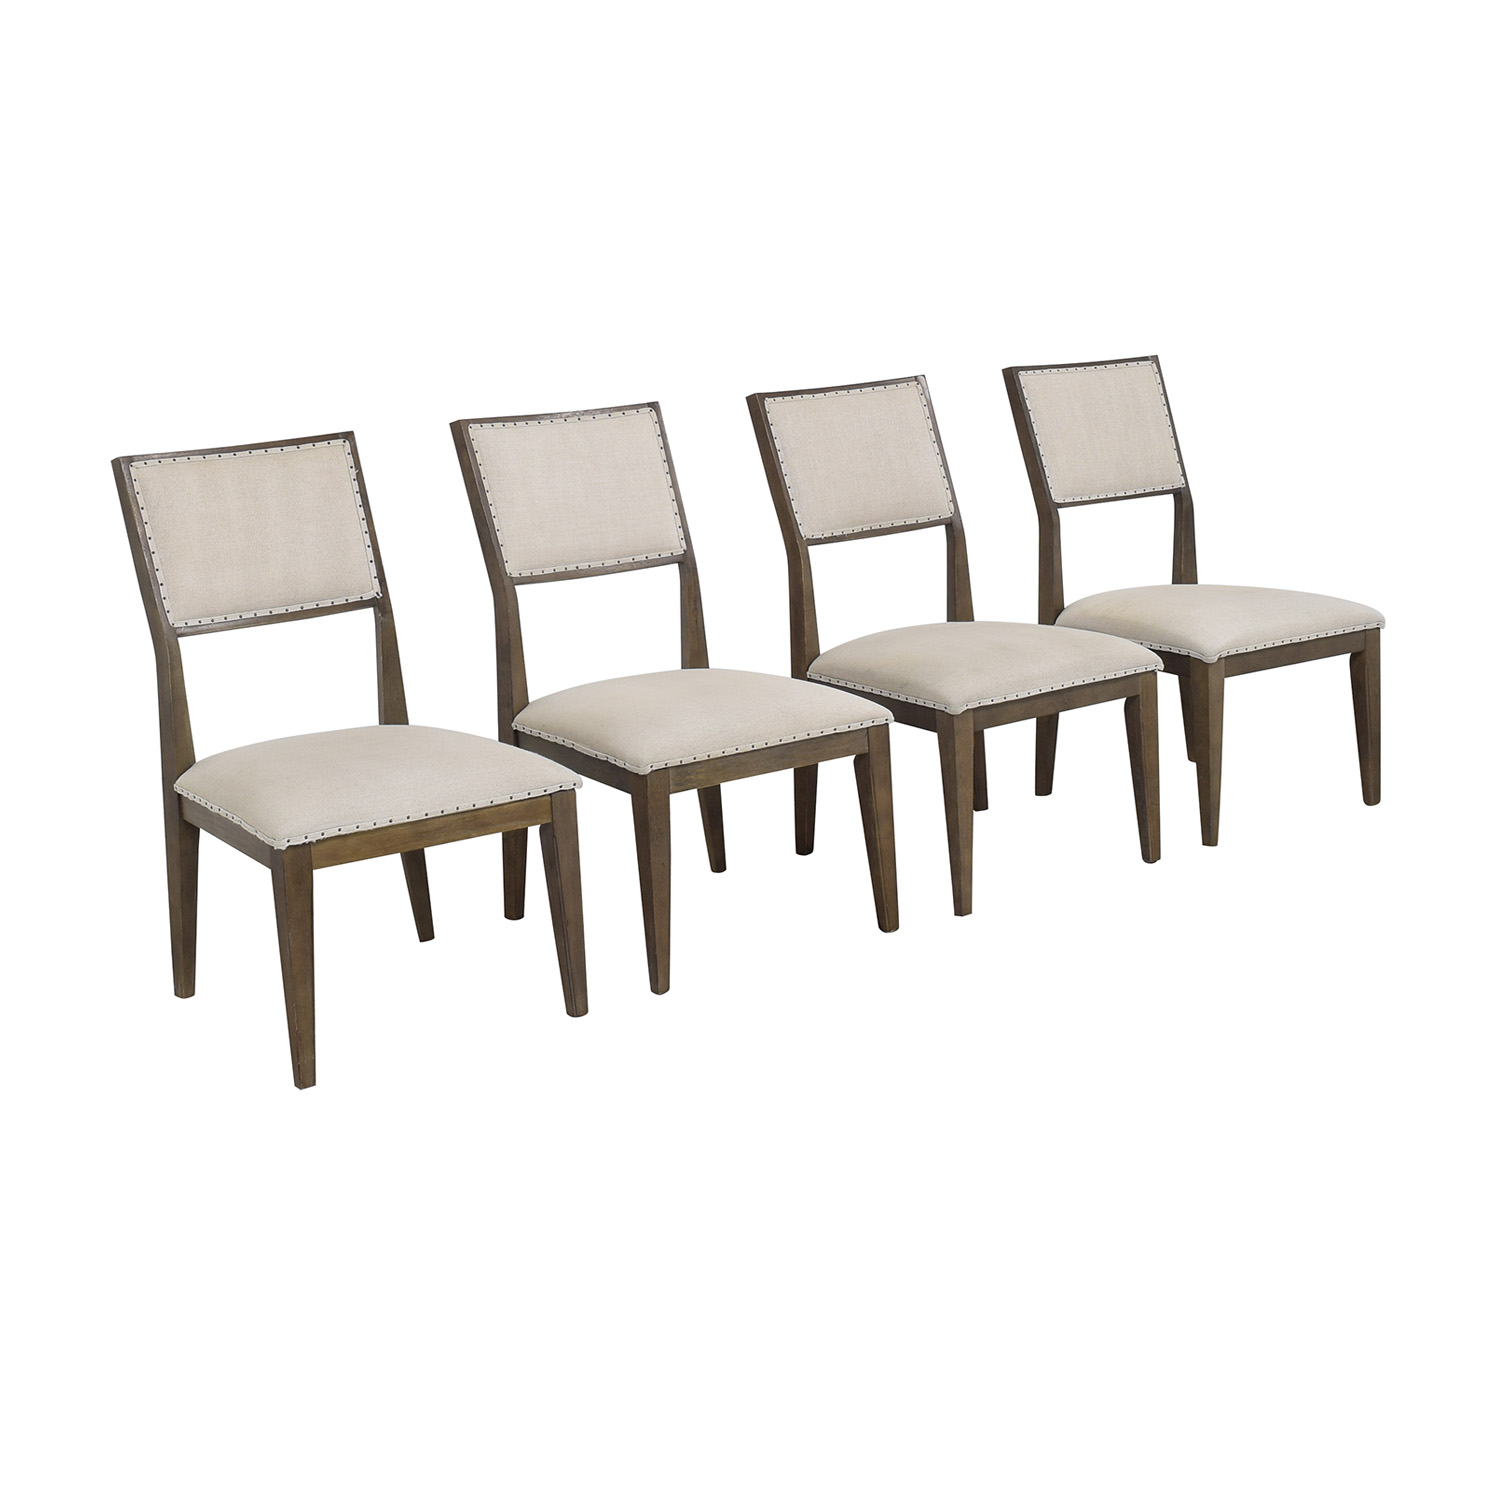 Universal Furniture Universal Furniture Playlist Dining Chairs Chairs